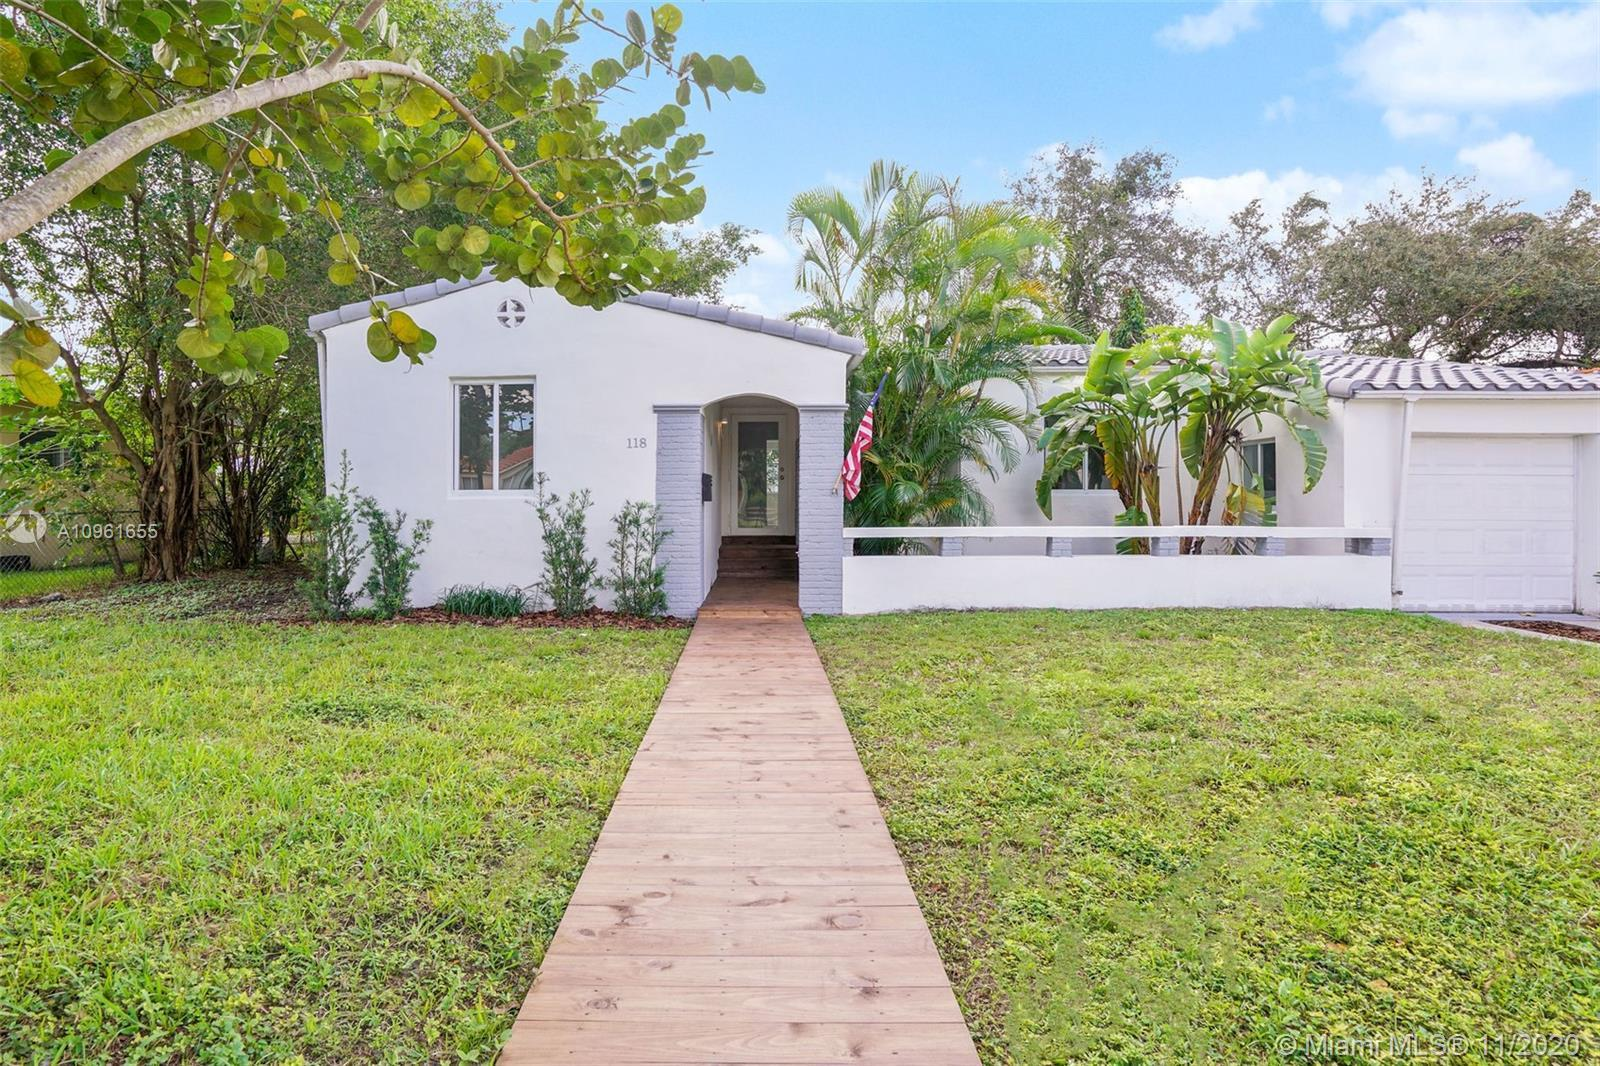 WON'T LAST! Mid century 3 bedroom/2 bathroom family home maintained in immaculate condition, located